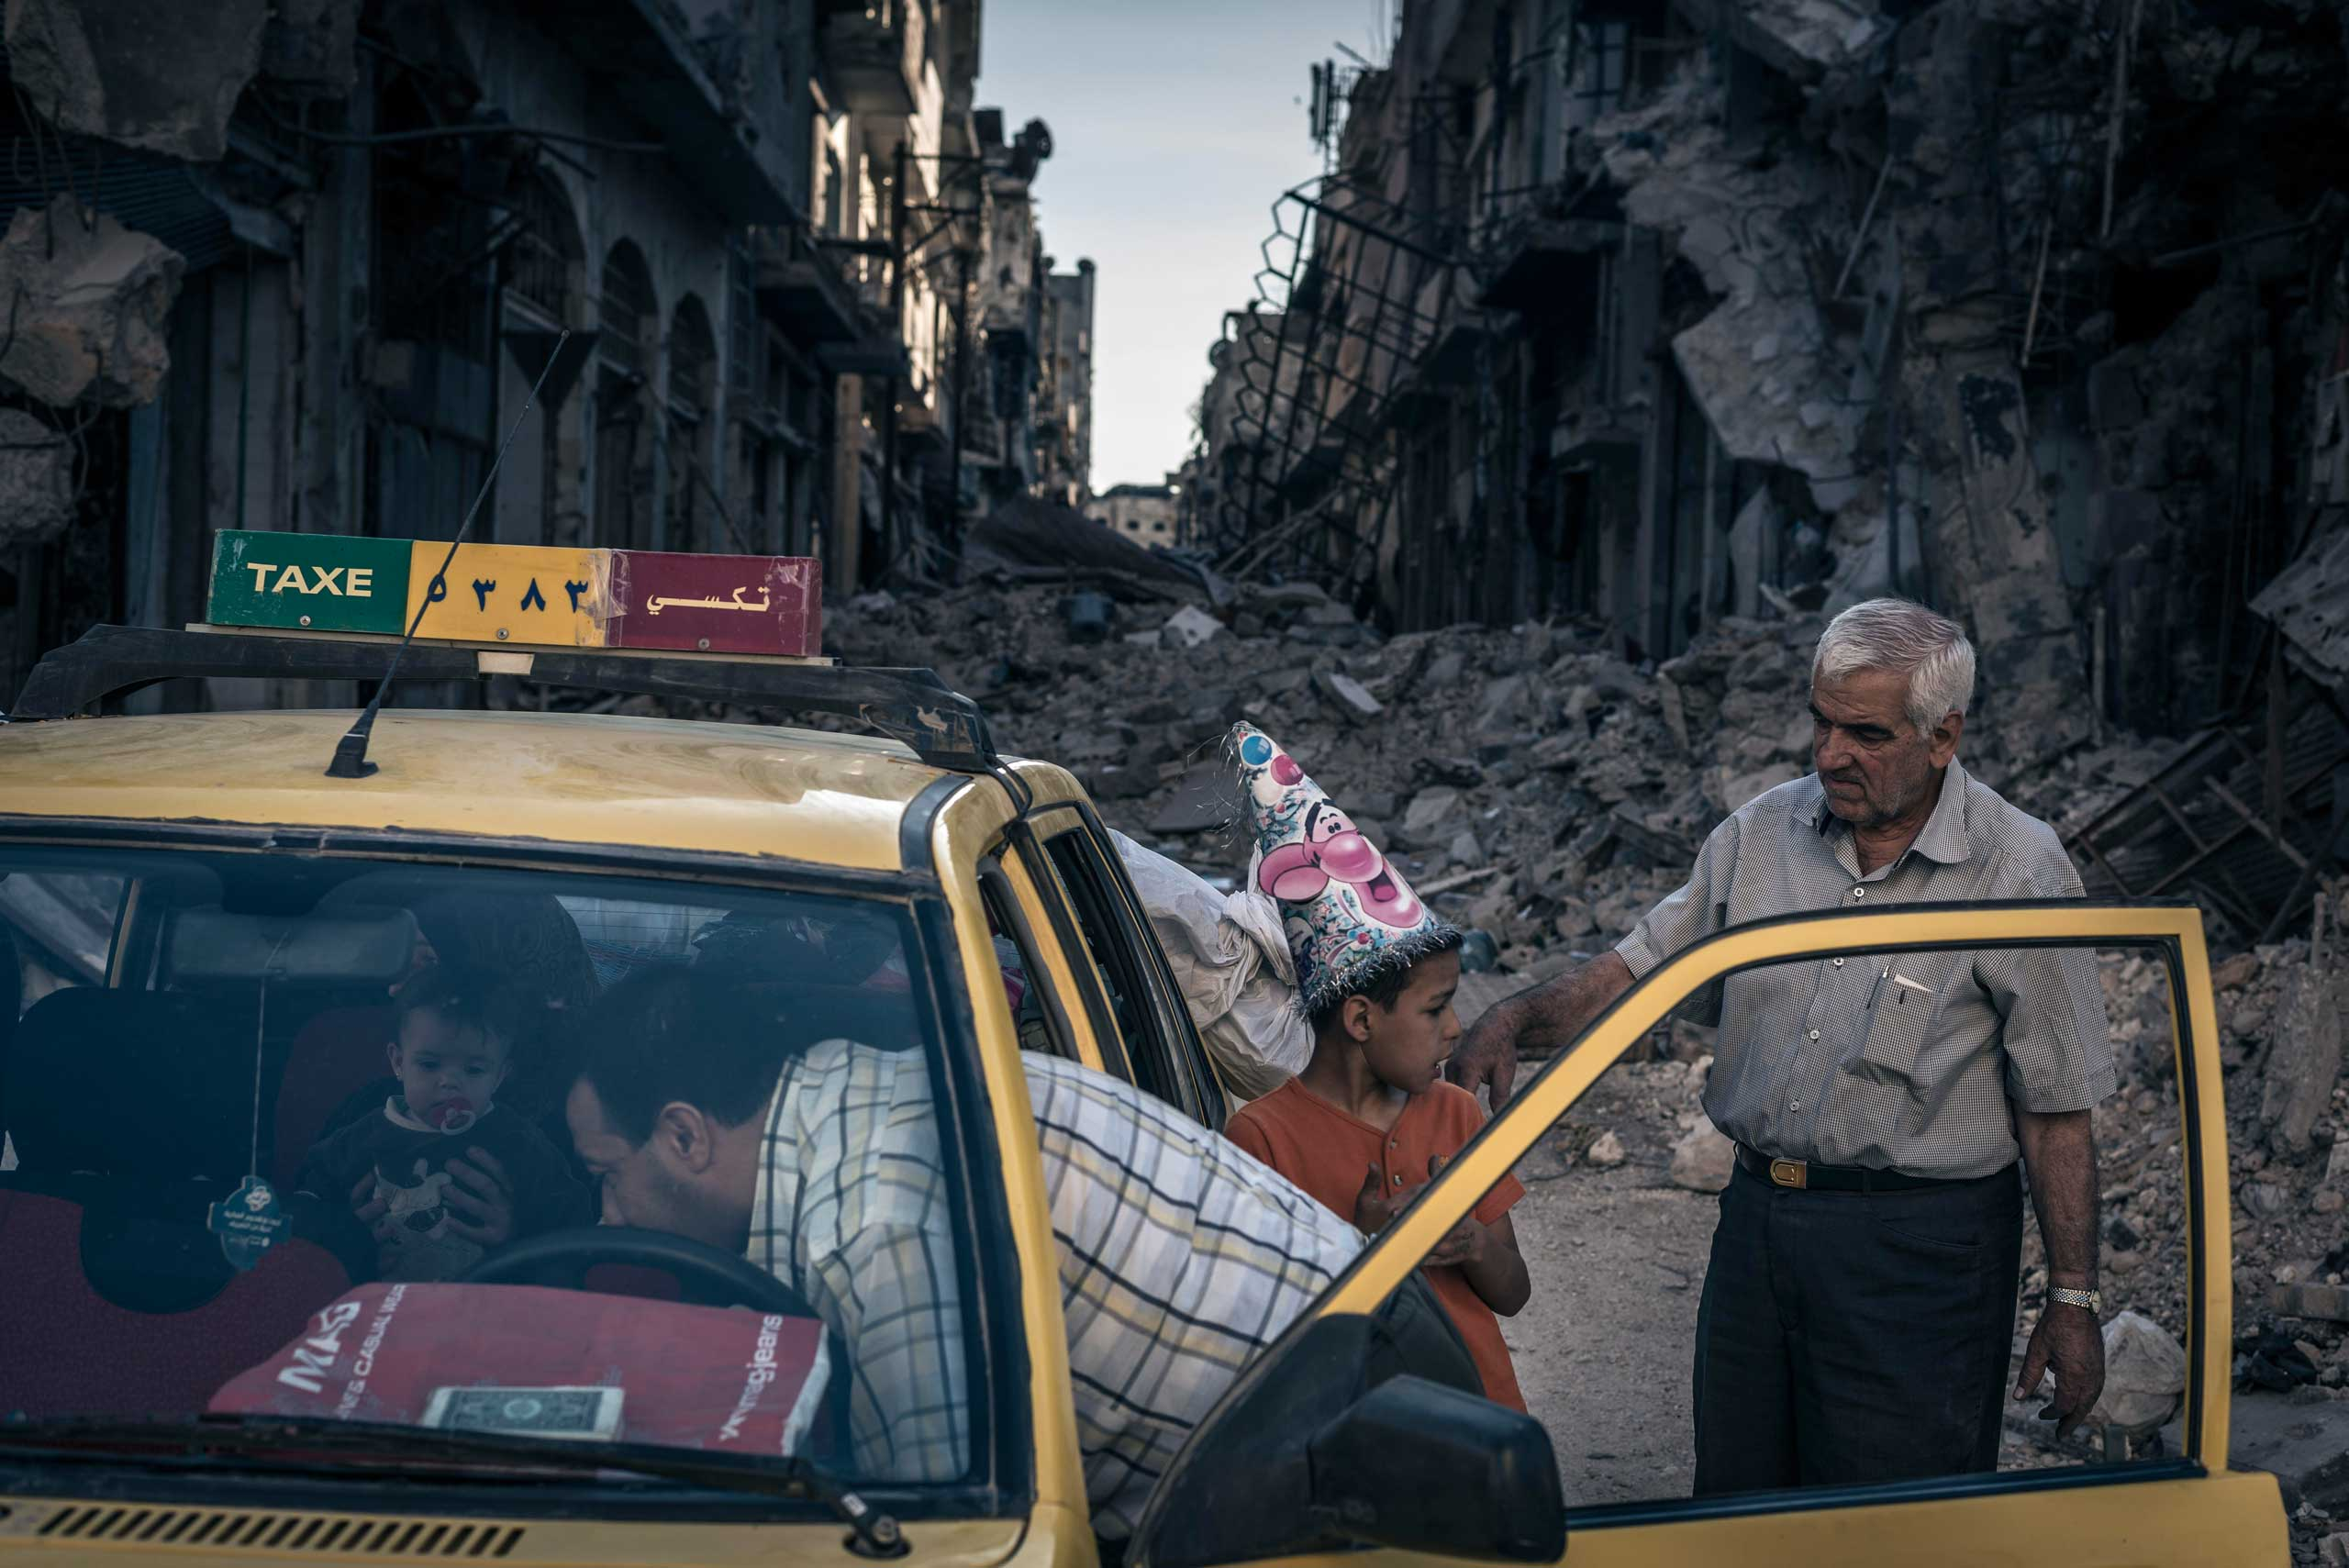 The New York Times: 2014 The Year in PicturesAbu Hisham Abdel Karim loads a taxi with his belongings in the Khalidieh district of Homs, Syria, which had been destroyed by fighting, June 15, 2014.